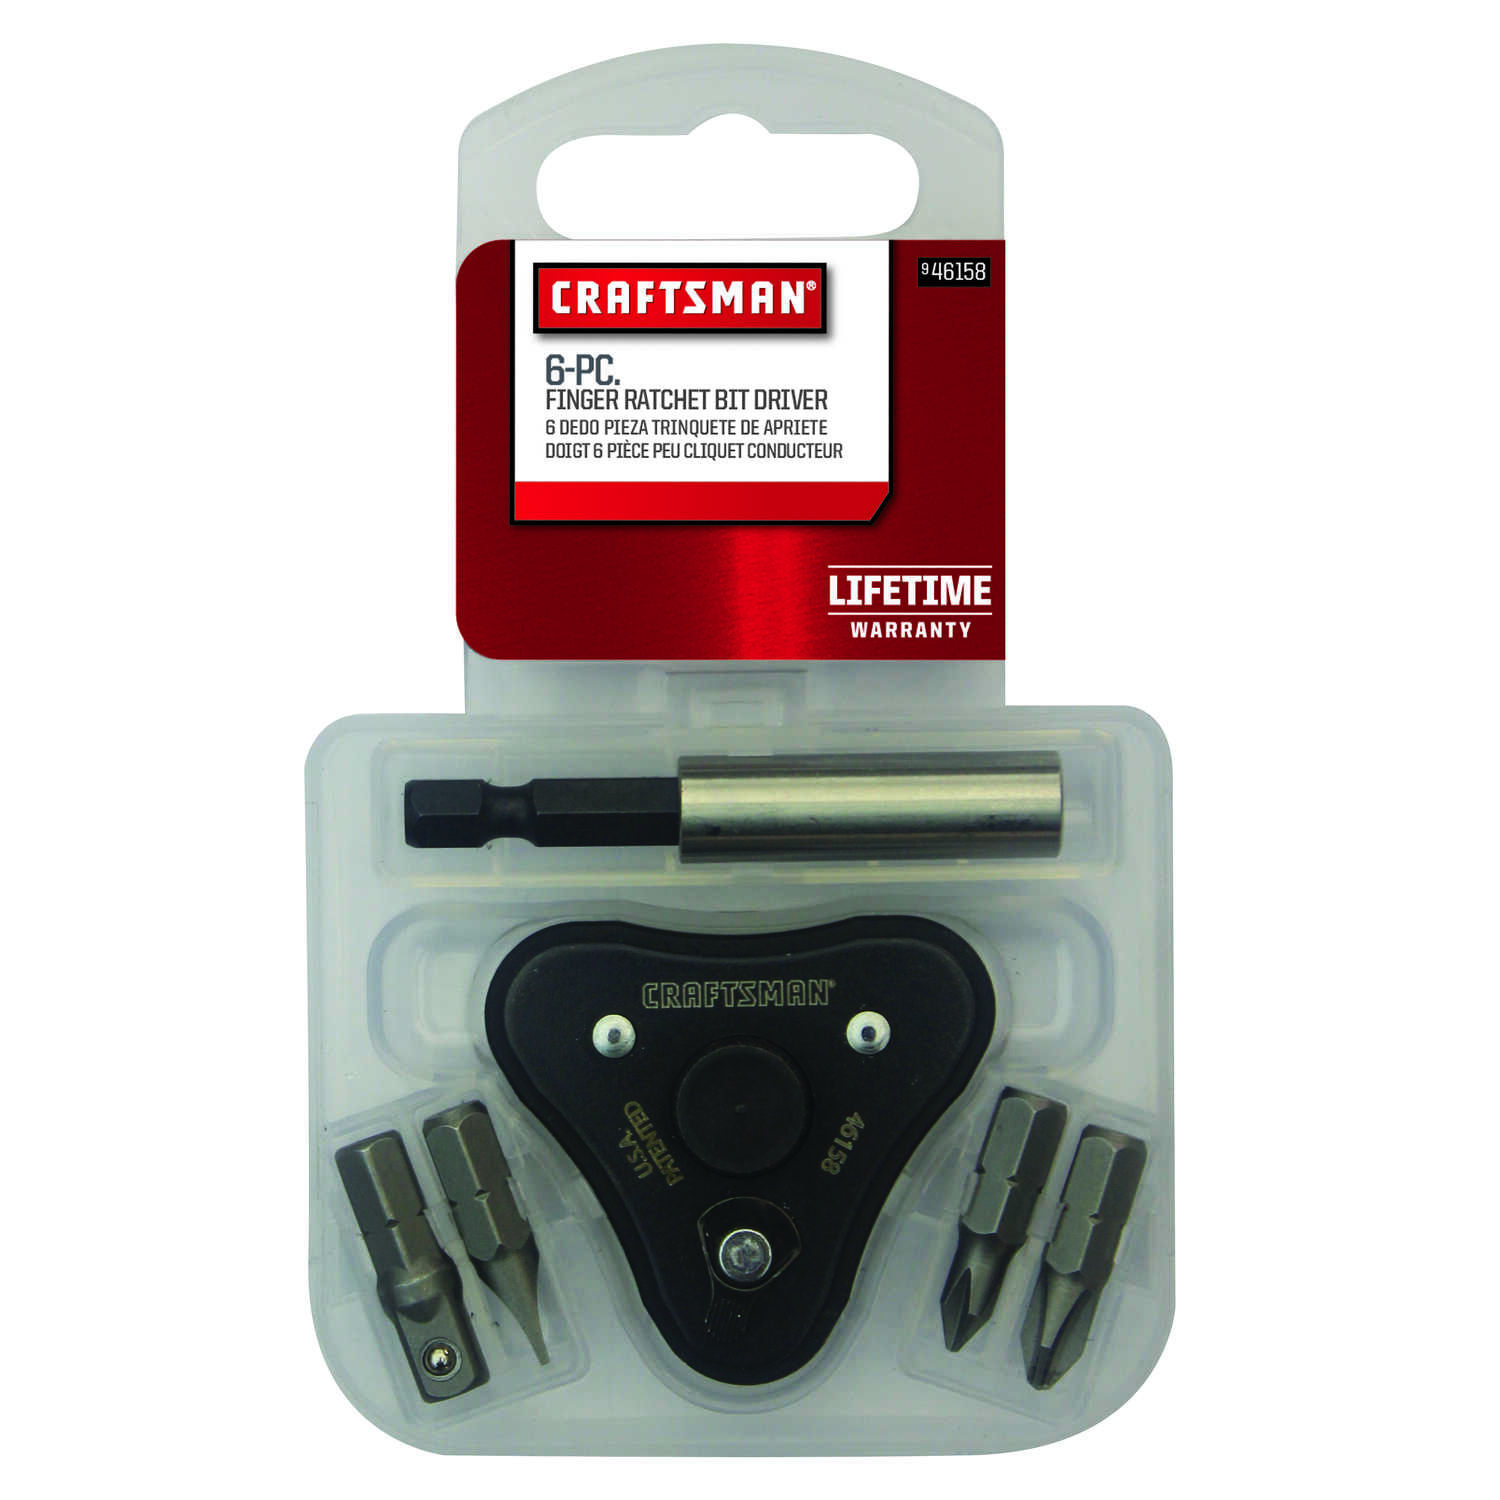 Craftsman  1 in. Ratcheting Finger  No. 1  Finger Bit Screwdriver  Steel  Black  1 pc.